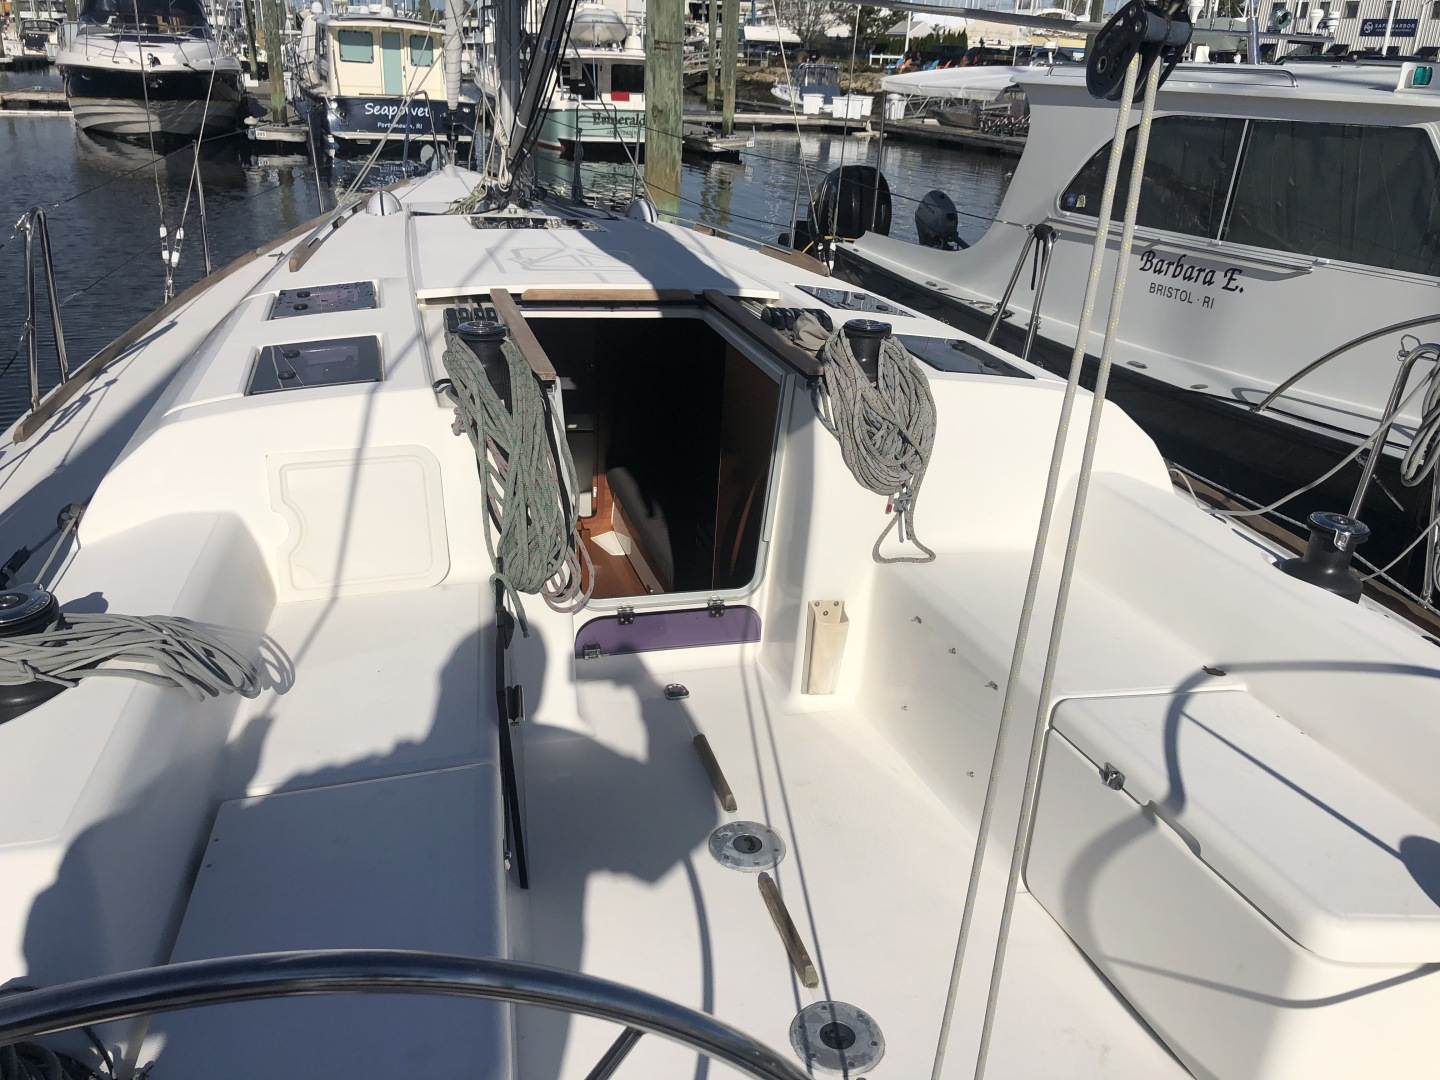 Dufour-36 P 2014 -Portsmouth-Rhode Island-United States-Cockpit-1551075 | Thumbnail